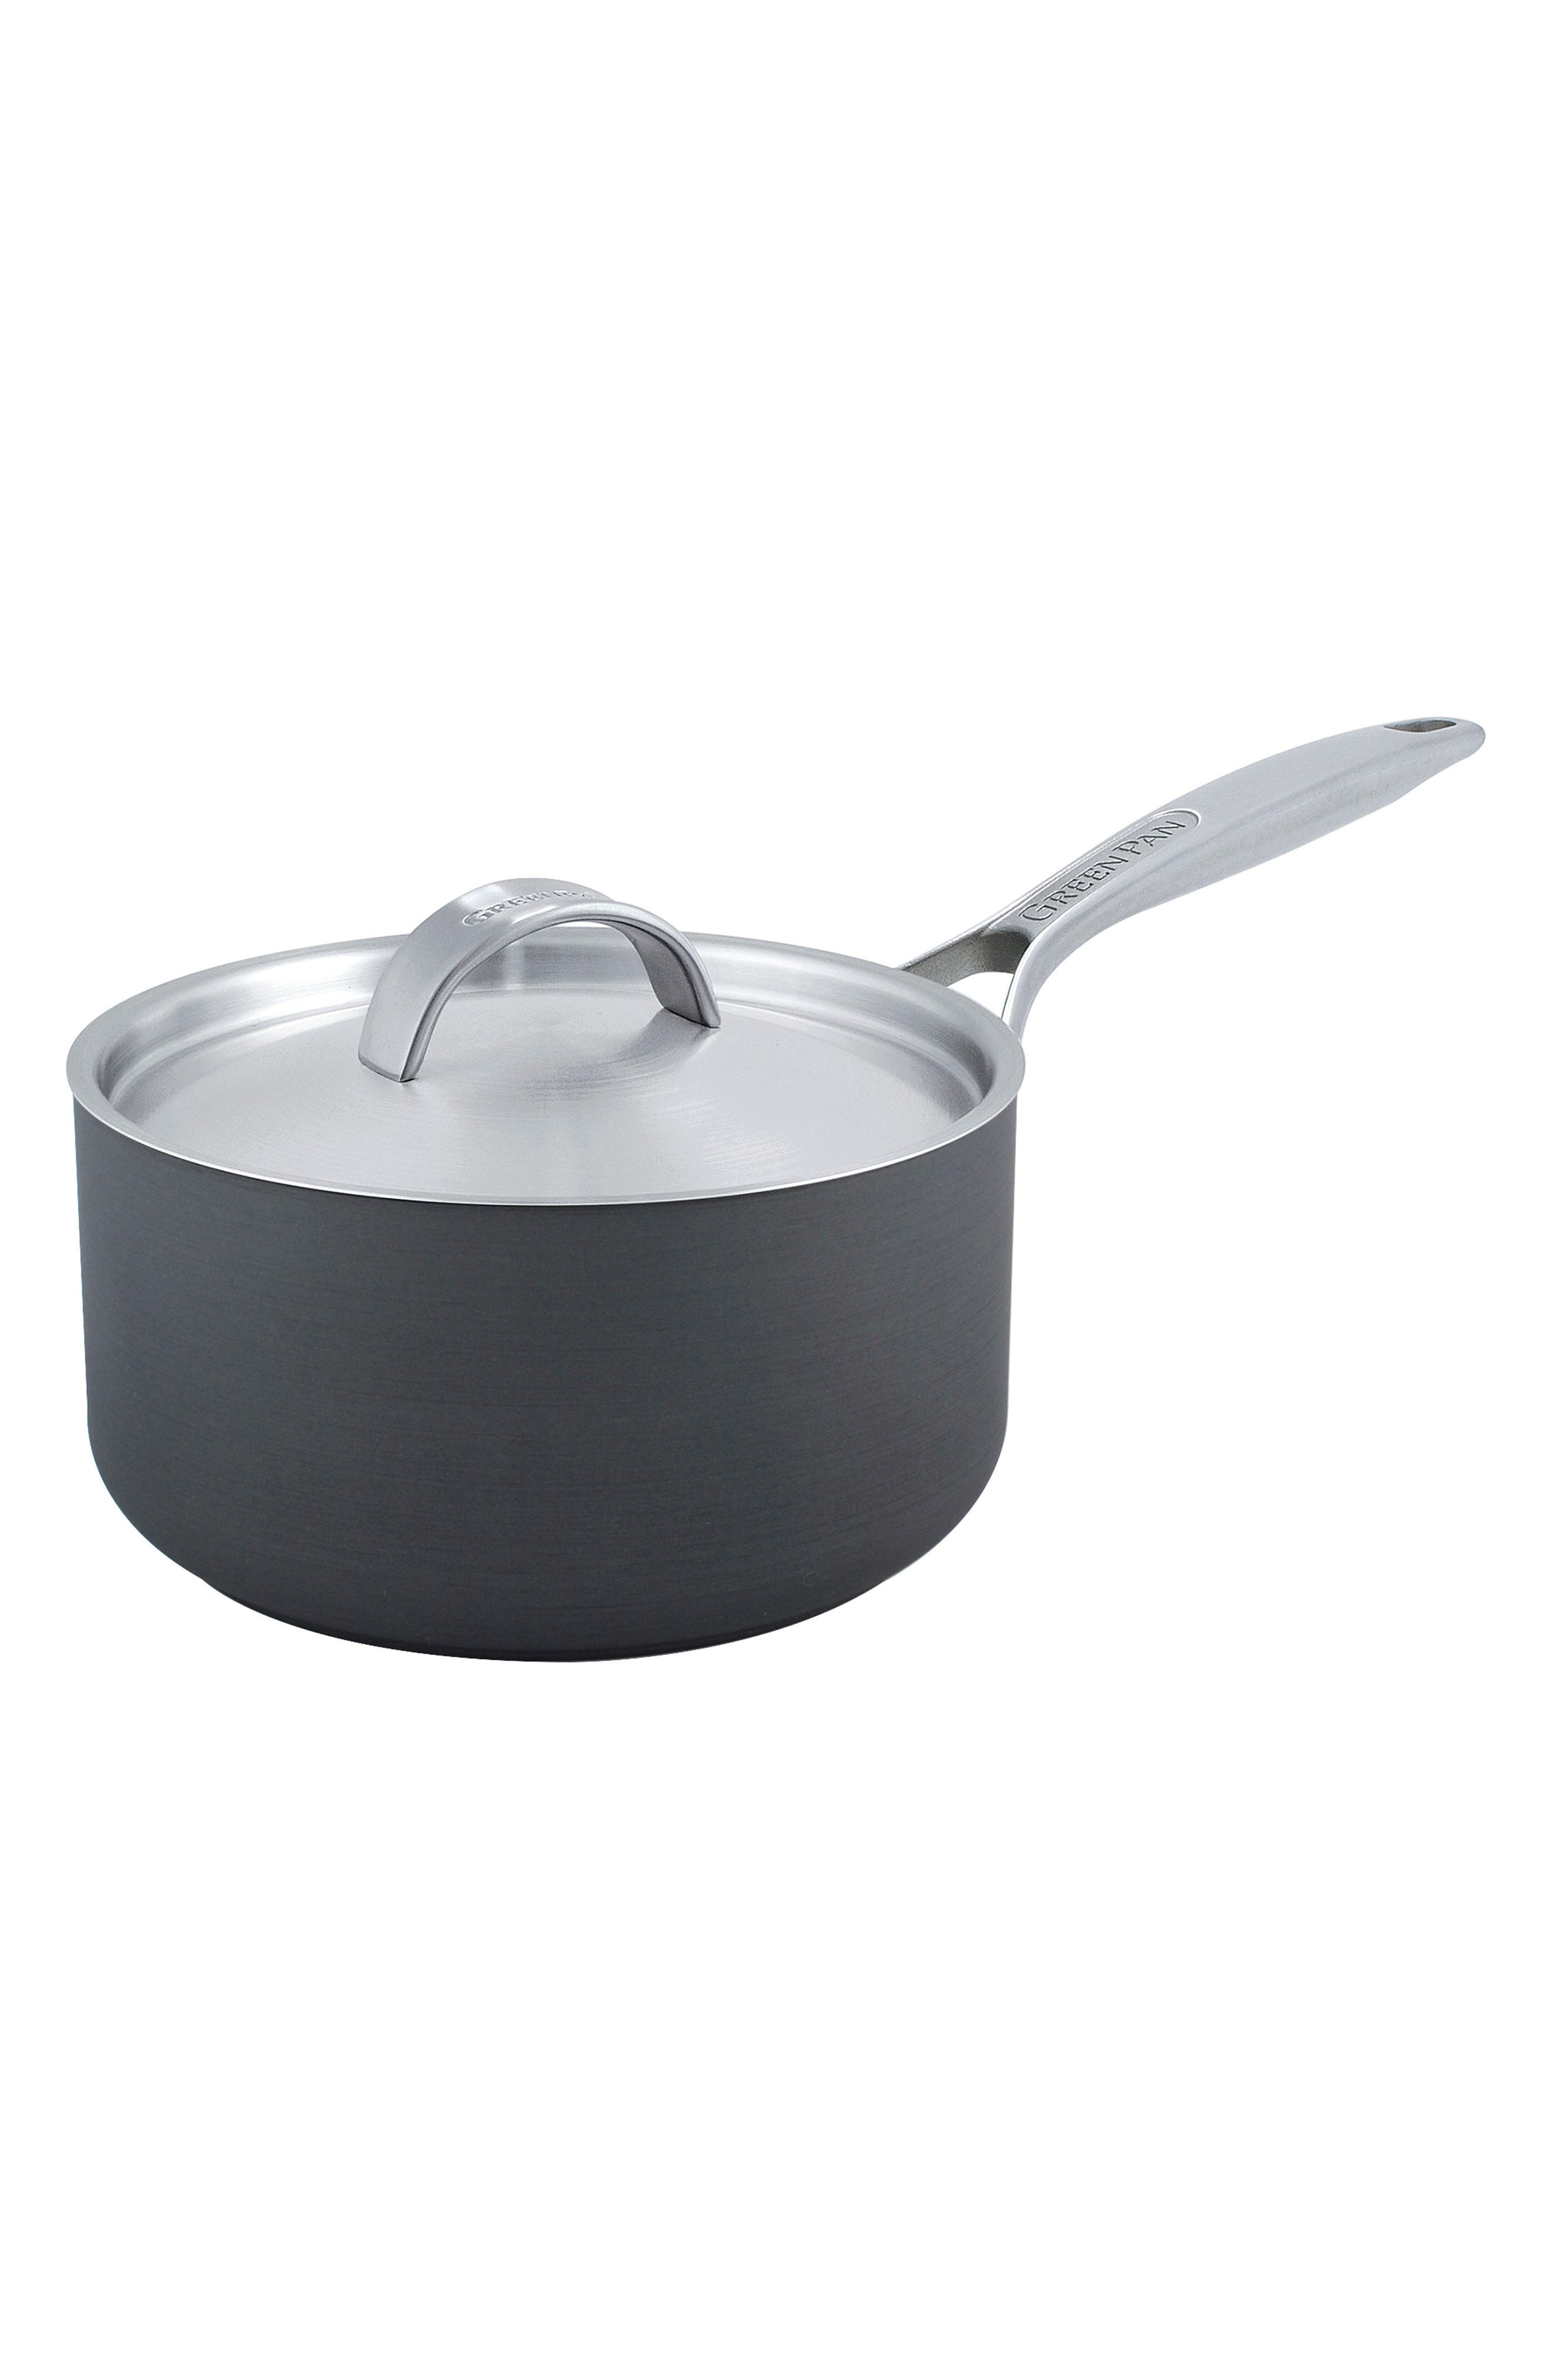 Paris 3-Quart Multilayer Stainless Steel Ceramic Nonstick Saucepan with Lid,                         Main,                         color, Grey